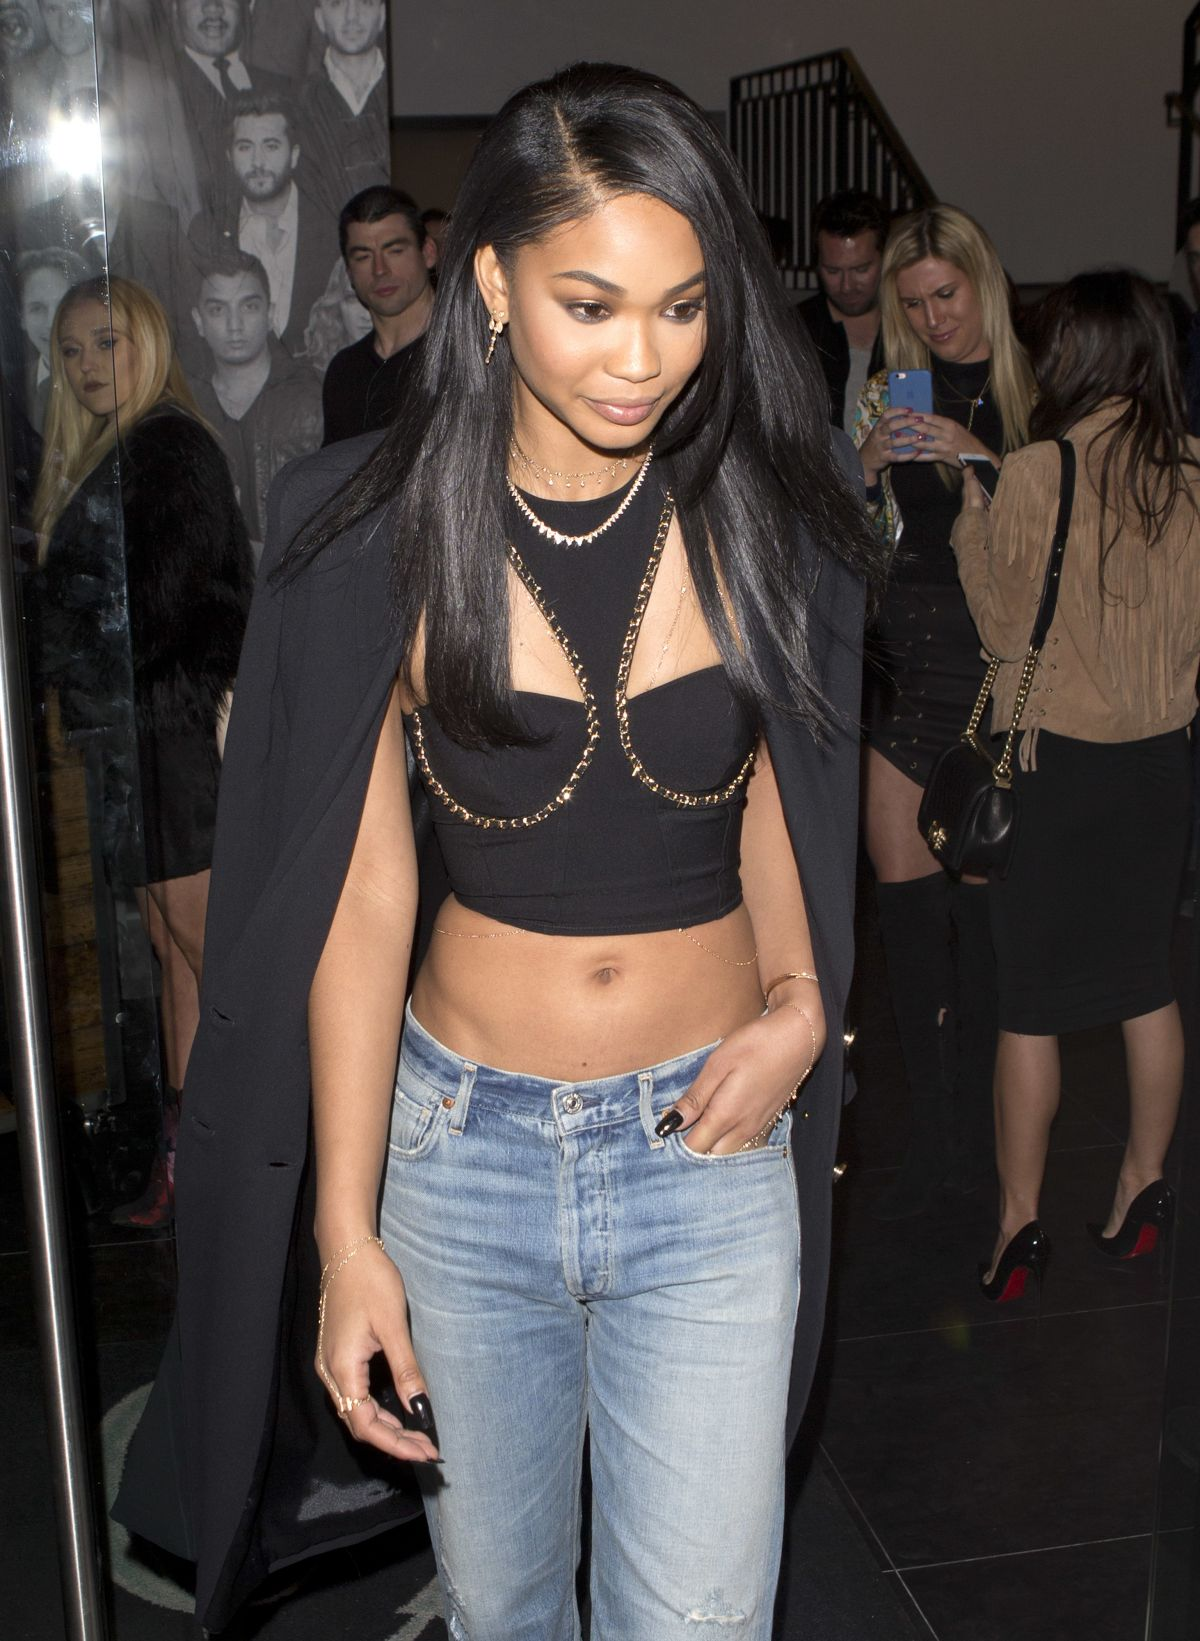 CHANEL IMAN at Catch LA in West Hollywood 01/27/2017